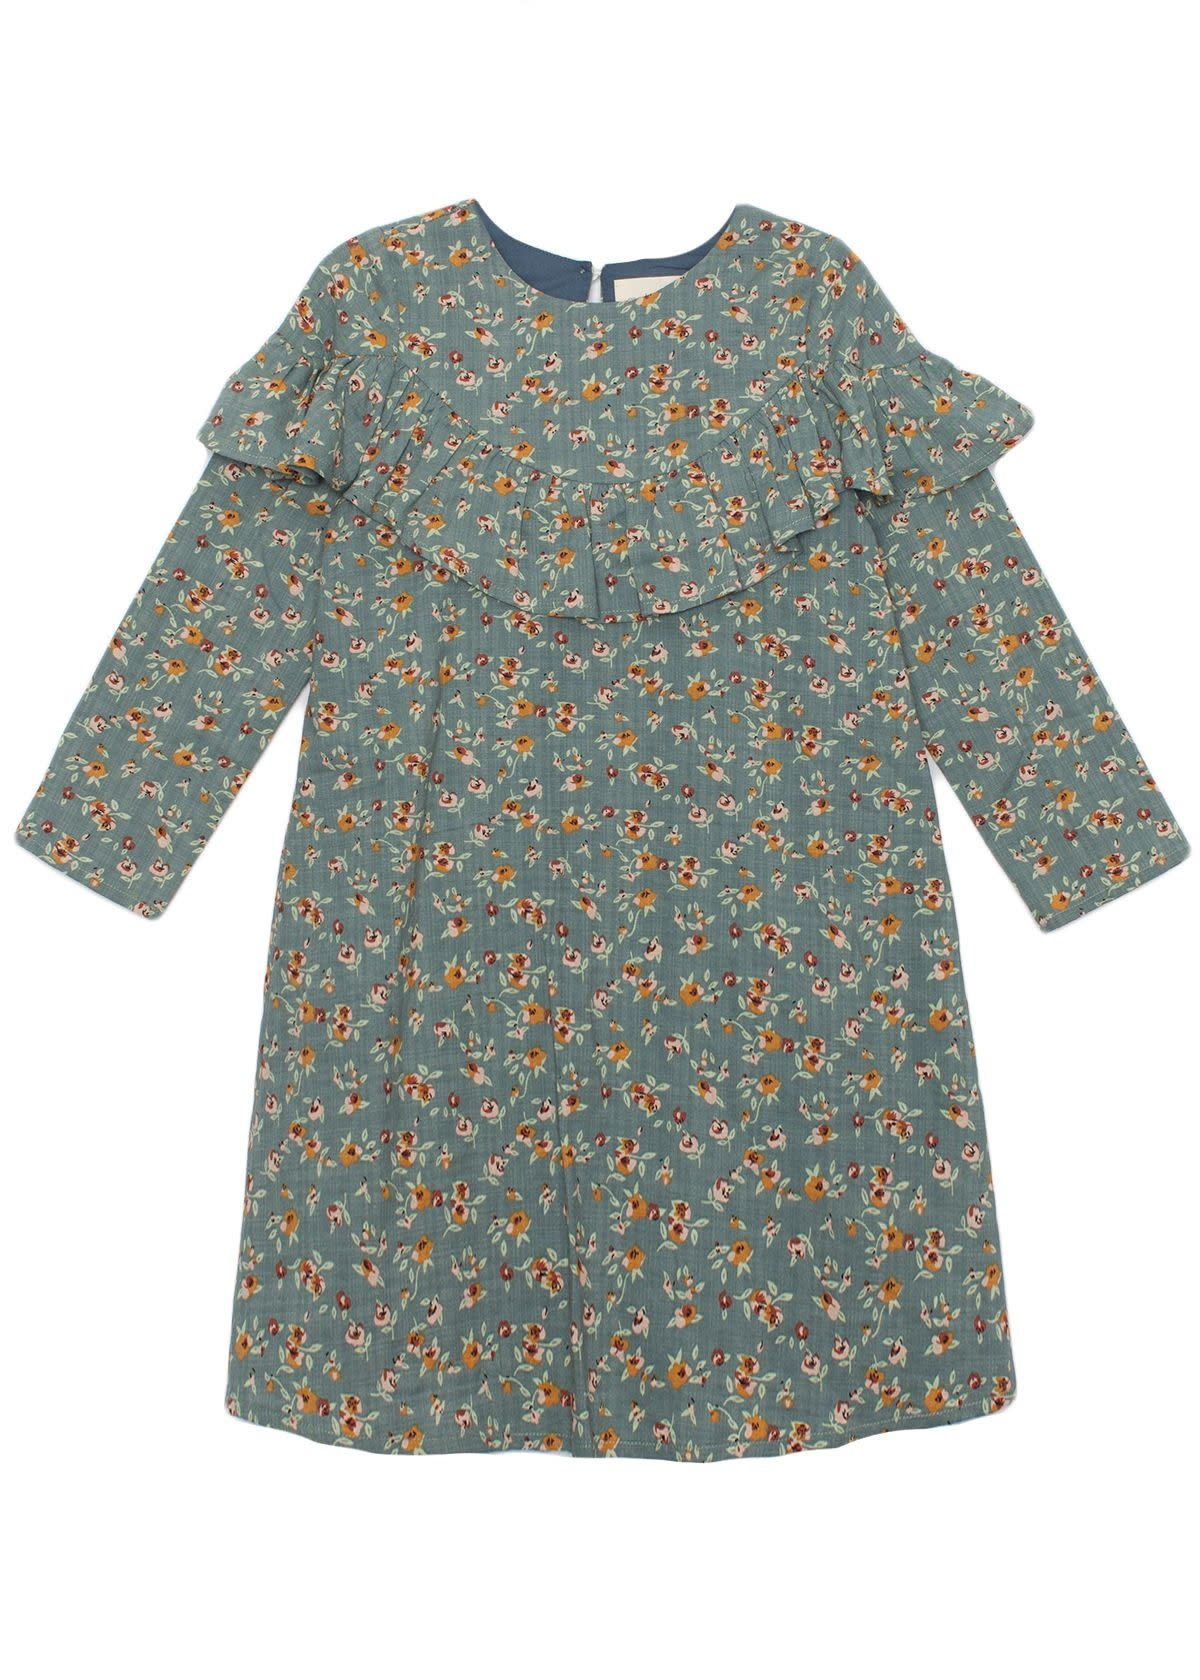 Mabel and Honey Green Floral Dress